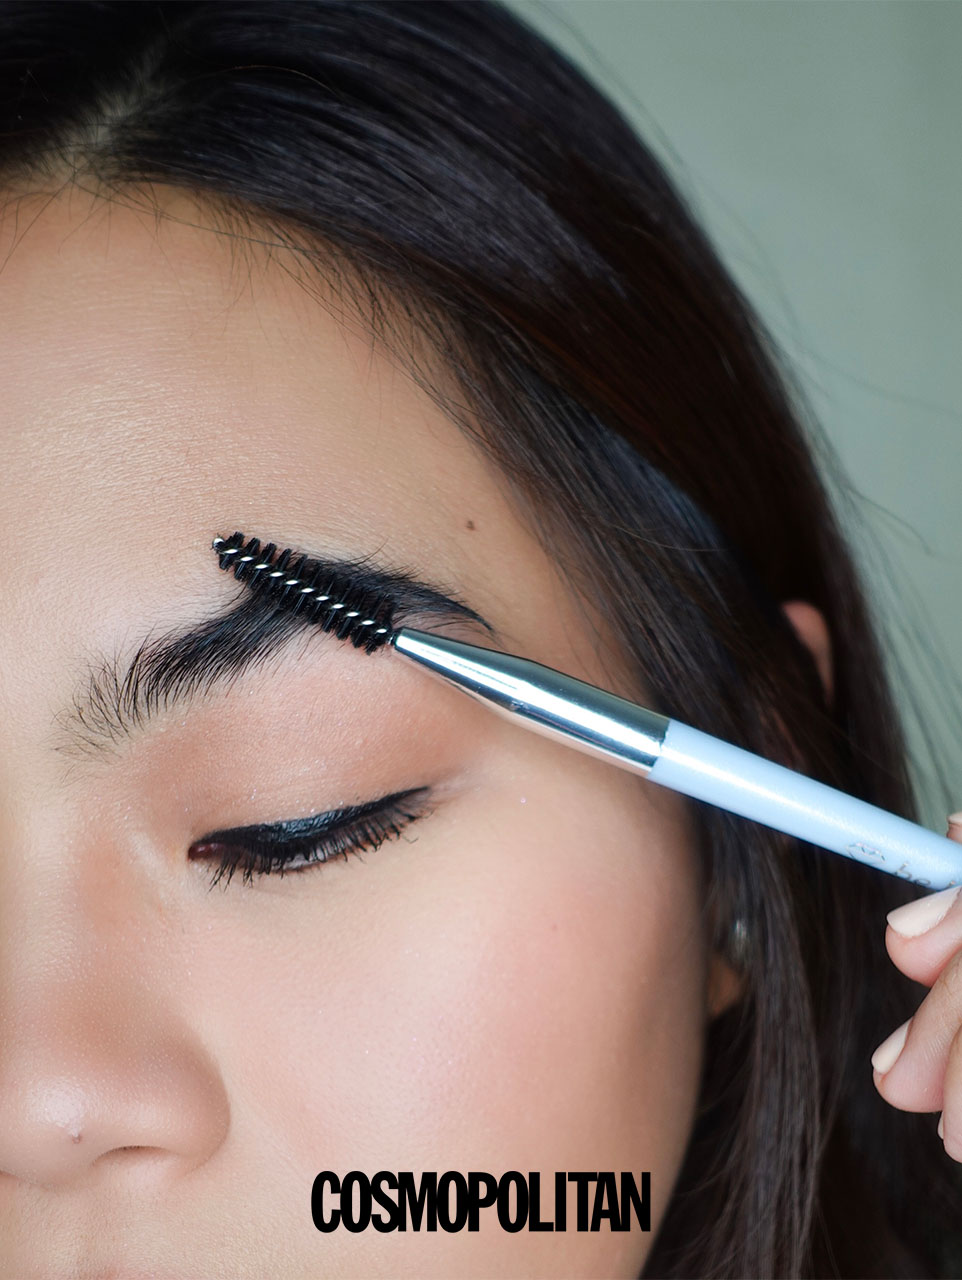 Easy 5-Step Routine For Bushy  Brows - Brush up the hairs